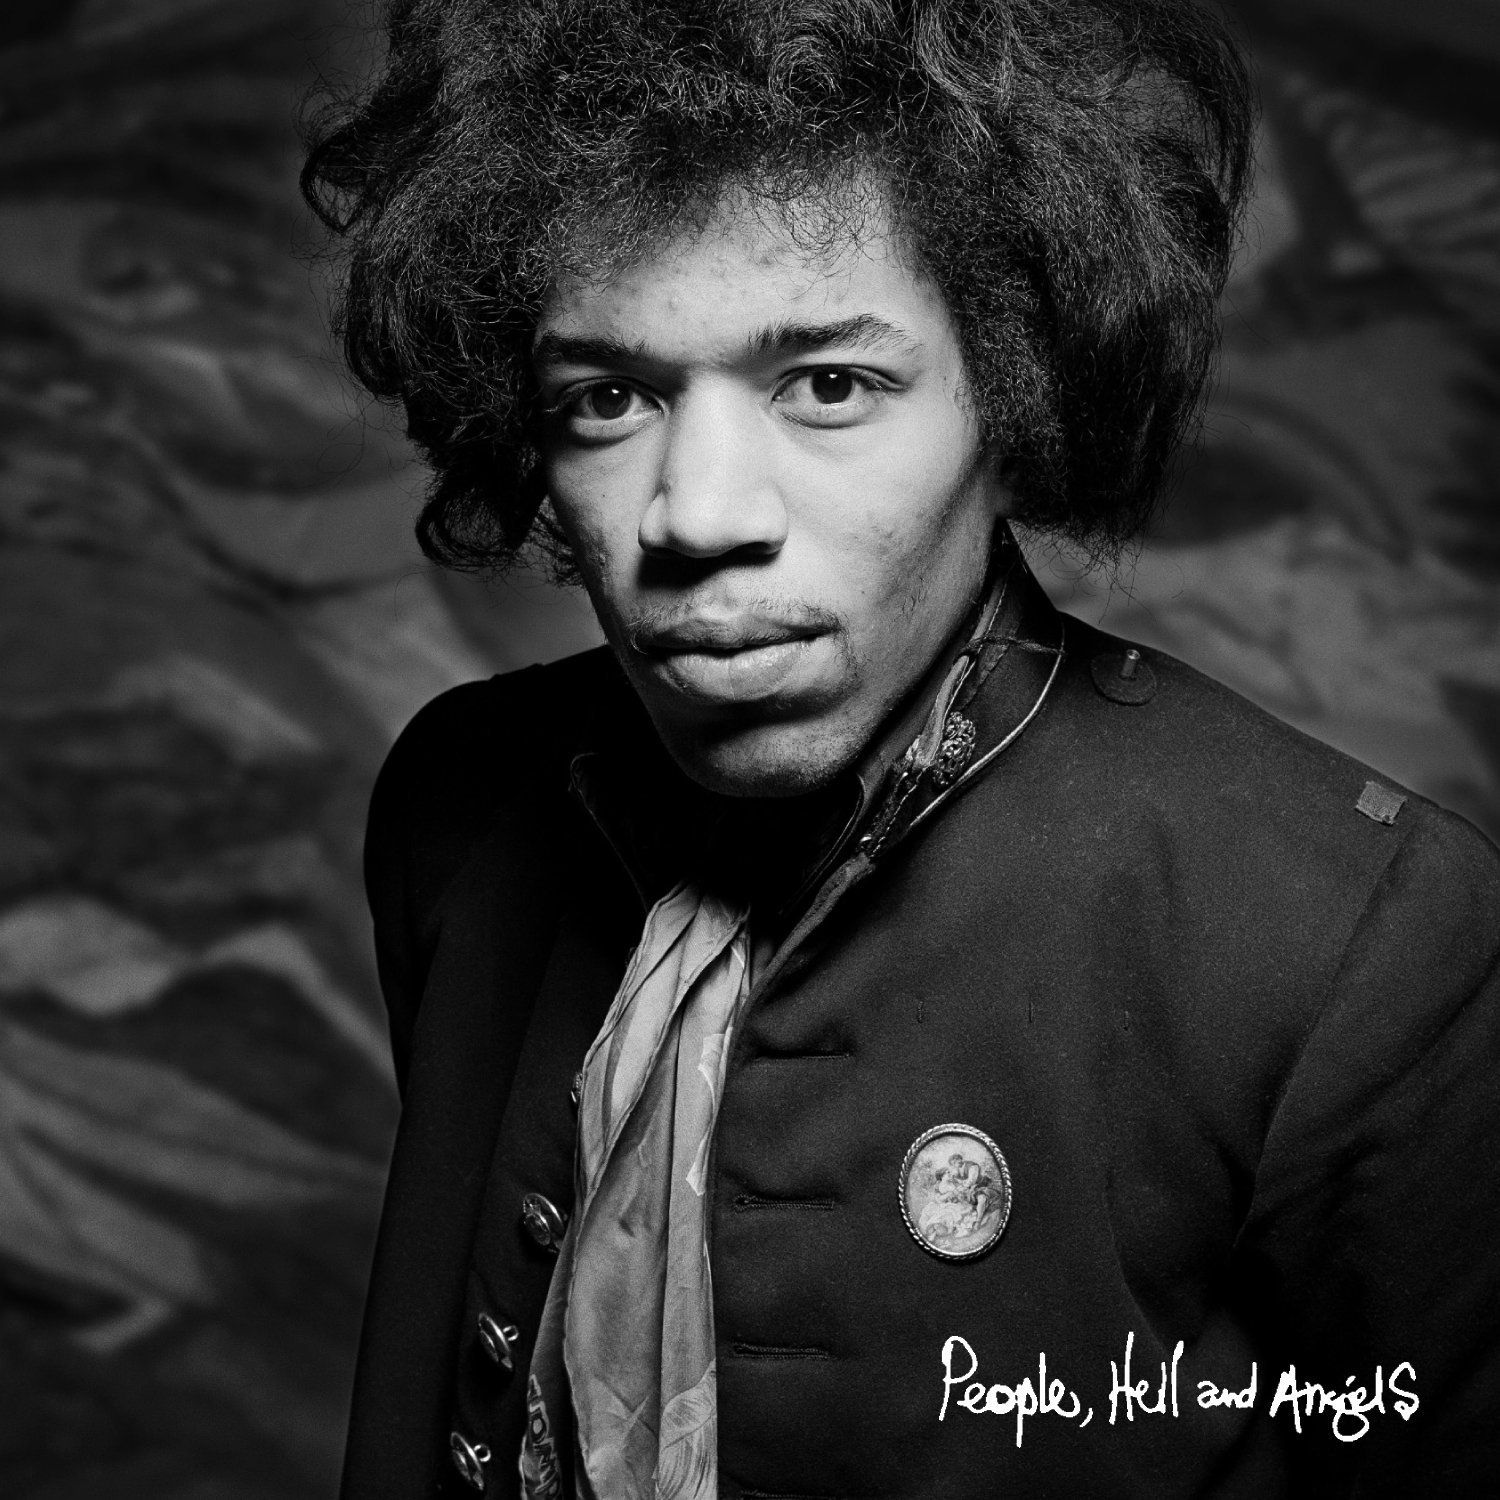 Jimi Hendrix - People, Hell And Angels album cover